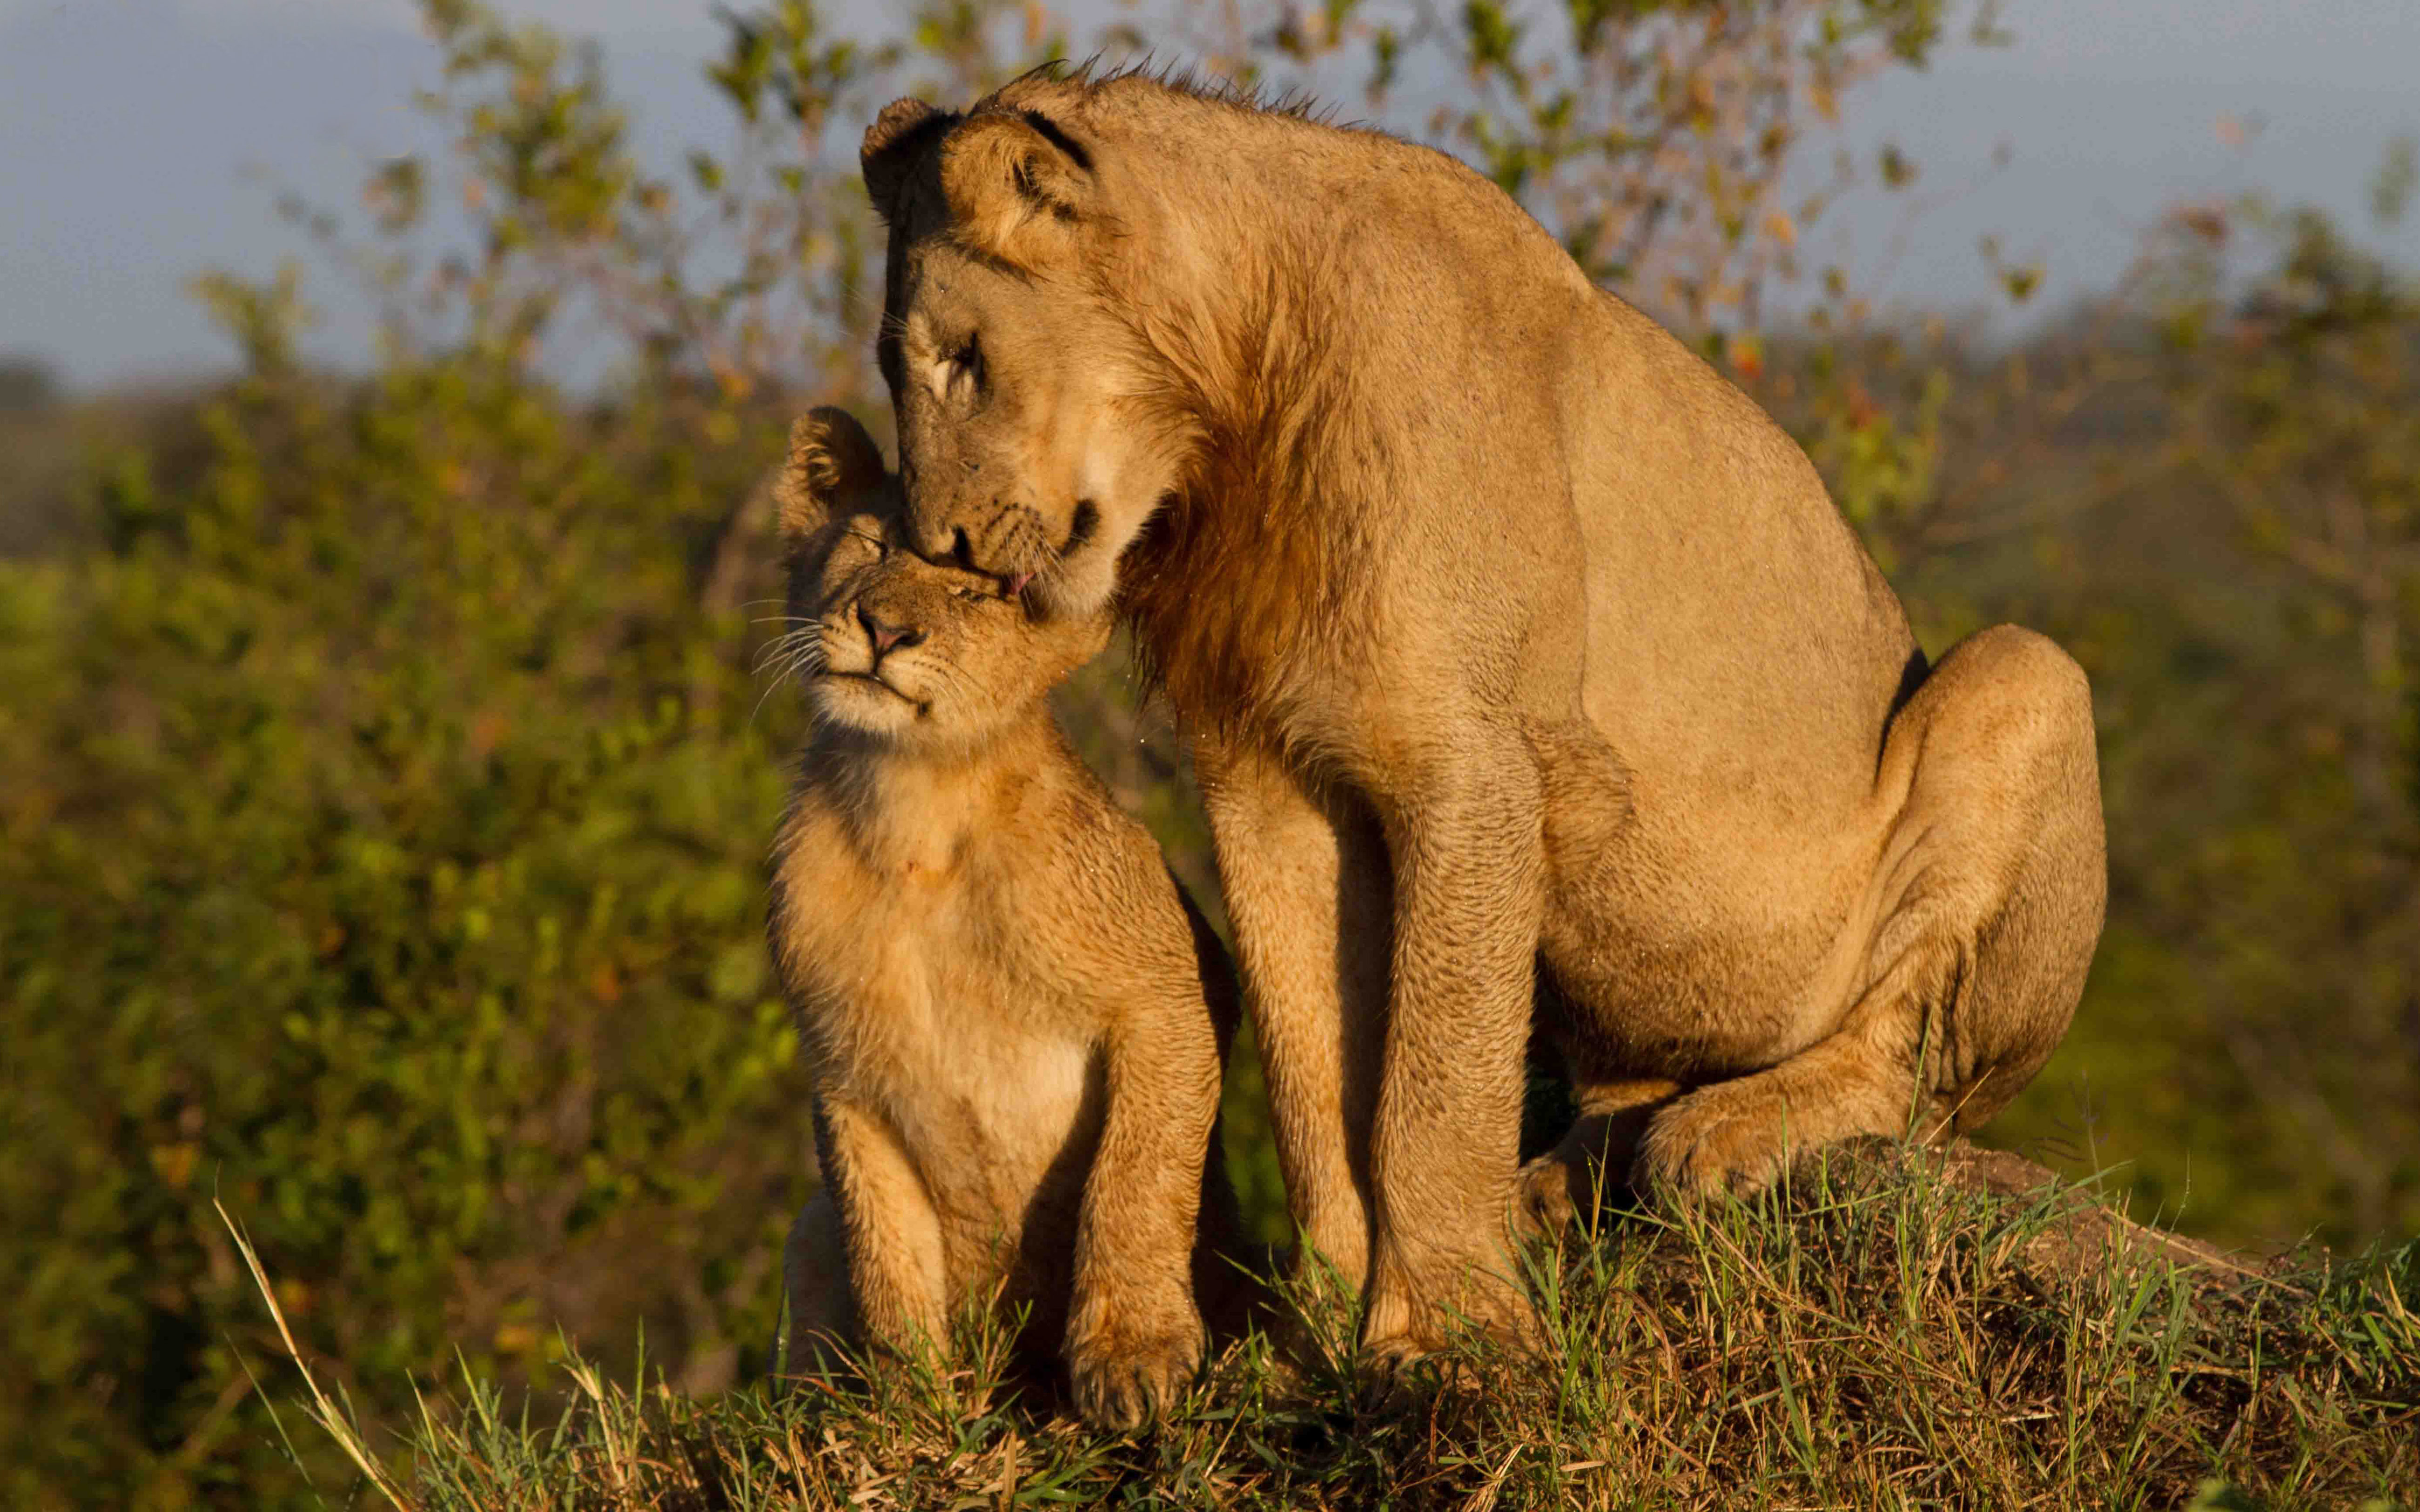 Hd Lock Screen Wallpaper Android Maternal Love Lioness With Cub Widescreen Free Download